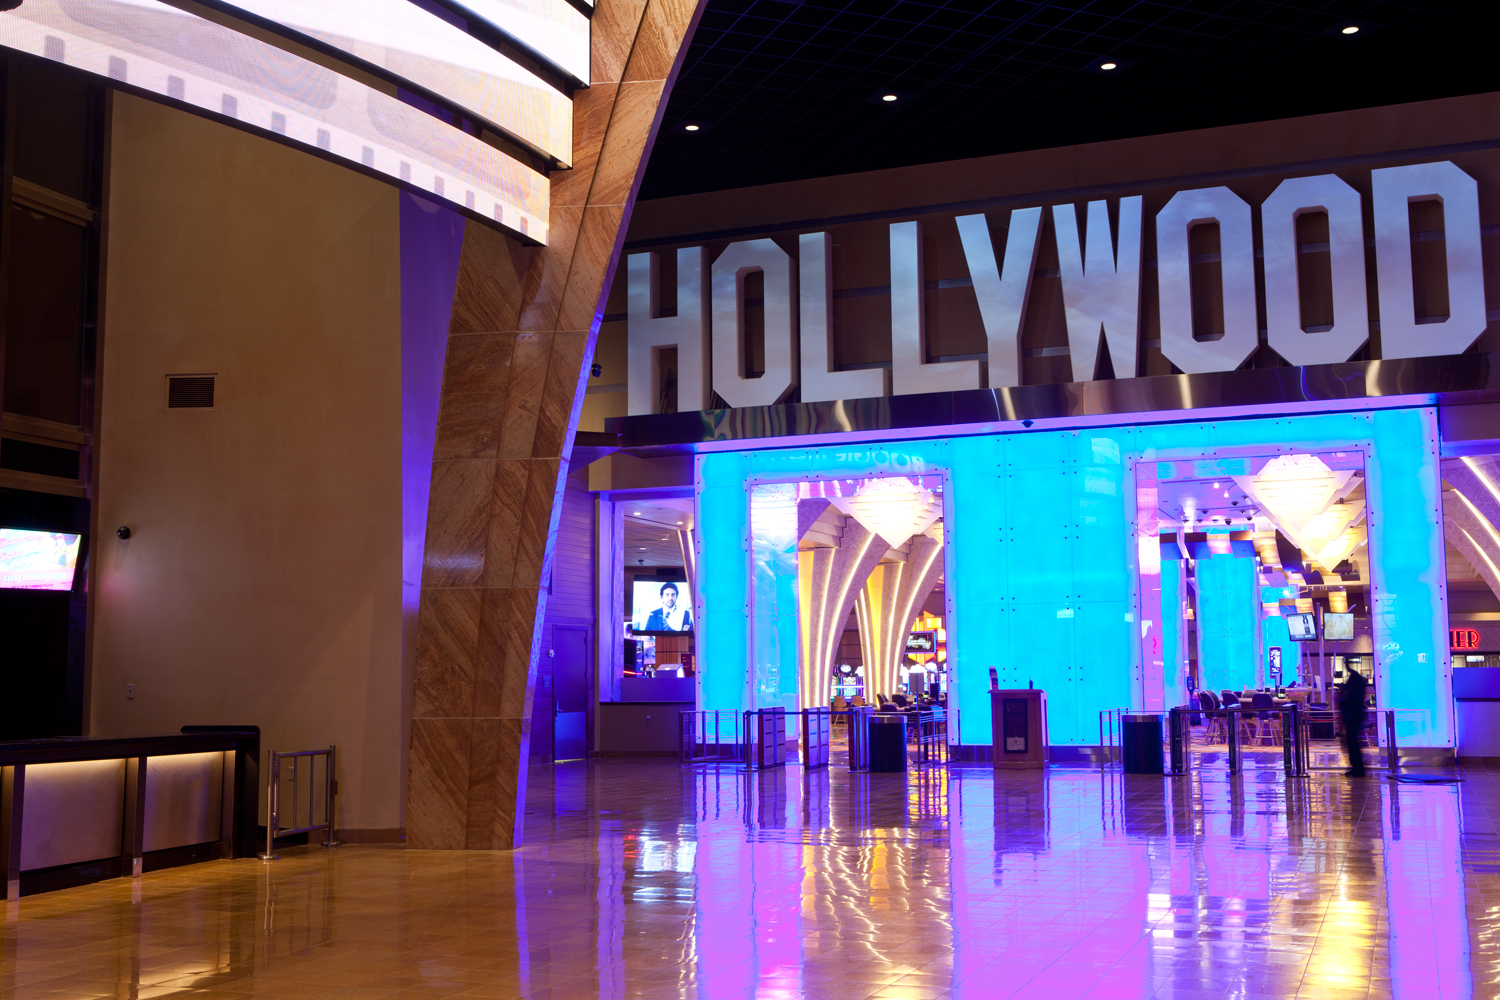 Hollywood-IMG_8703